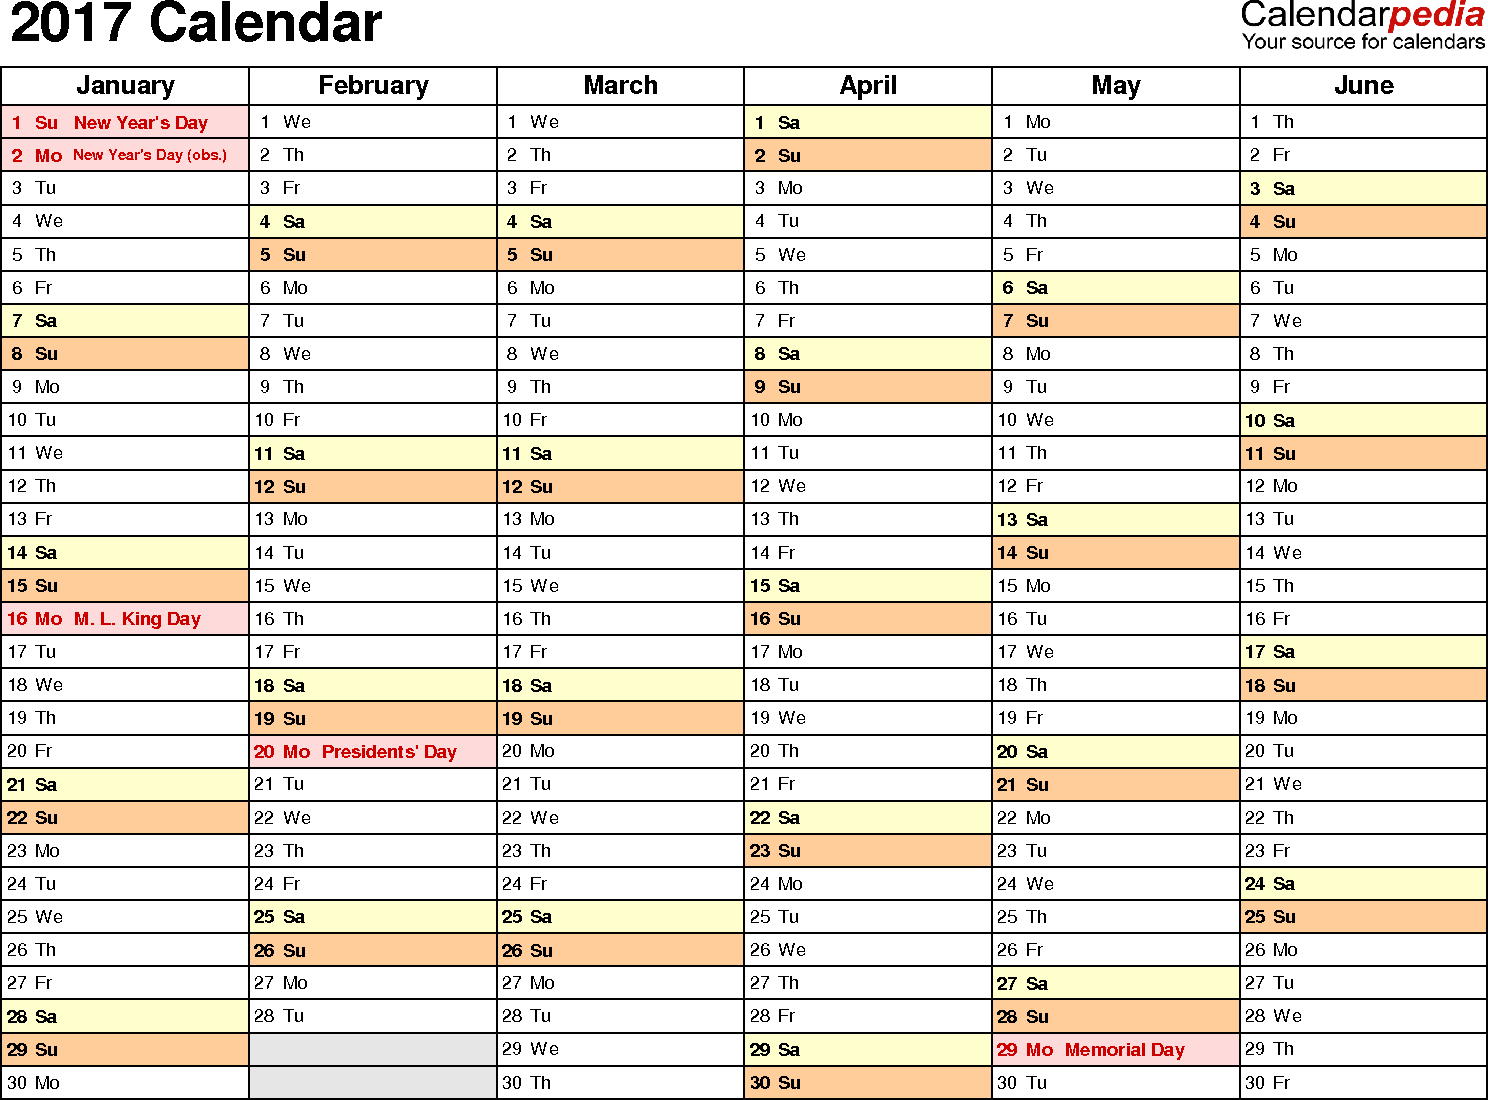 Ediblewildsus  Splendid  Calendar  Download  Free Printable Excel Templates Xls With Great Template   Calendar For Excel Months Horizontally  Pages Landscape Orientation With Amusing Excel If Then Formula Examples Also Excel Spreadsheet For Dummies In Addition Excel Utility And Excel Sumif Date As Well As Formula To Calculate Average In Excel Additionally How To Find Present Value In Excel From Calendarpediacom With Ediblewildsus  Great  Calendar  Download  Free Printable Excel Templates Xls With Amusing Template   Calendar For Excel Months Horizontally  Pages Landscape Orientation And Splendid Excel If Then Formula Examples Also Excel Spreadsheet For Dummies In Addition Excel Utility From Calendarpediacom